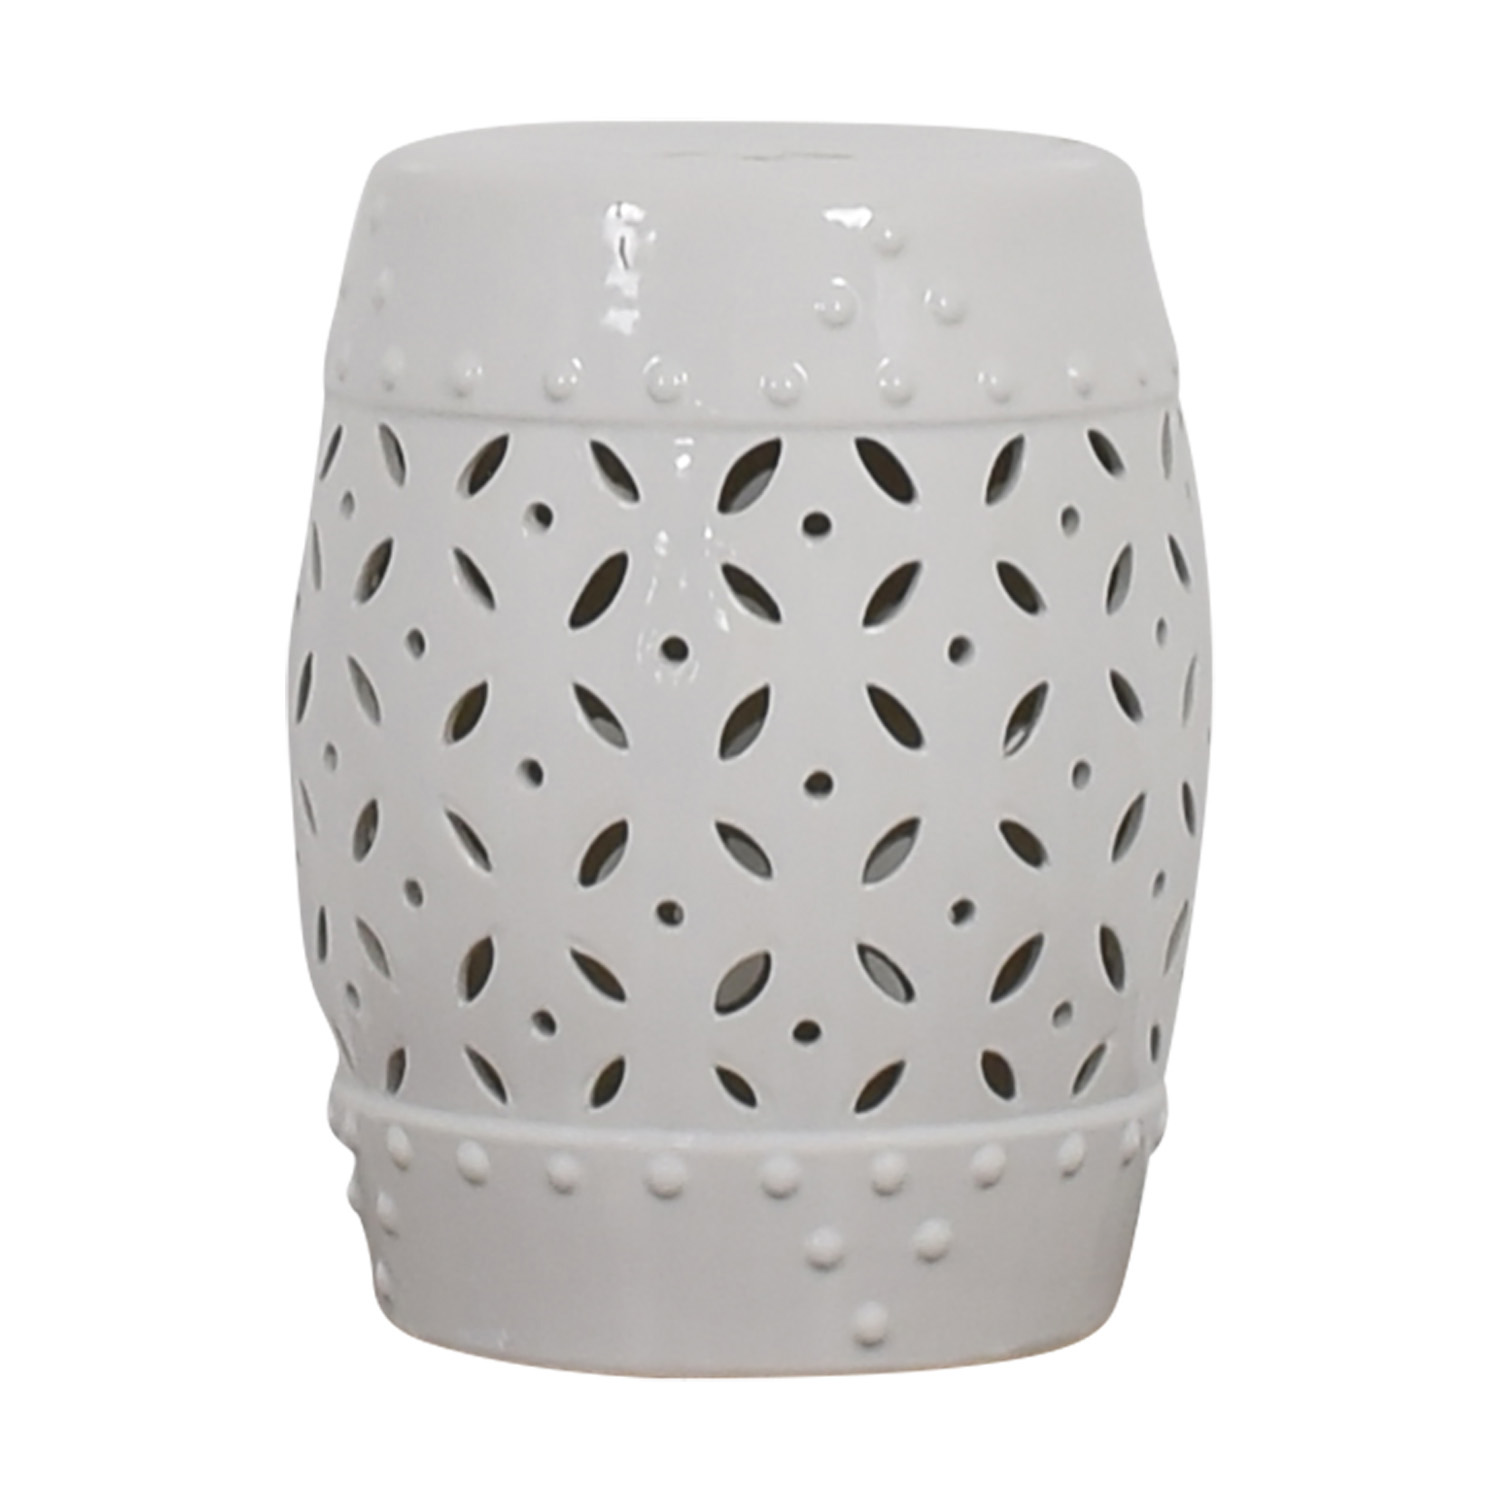 Superbe Pier 1 Imports Pier 1 Imports White Drum Accent Table White